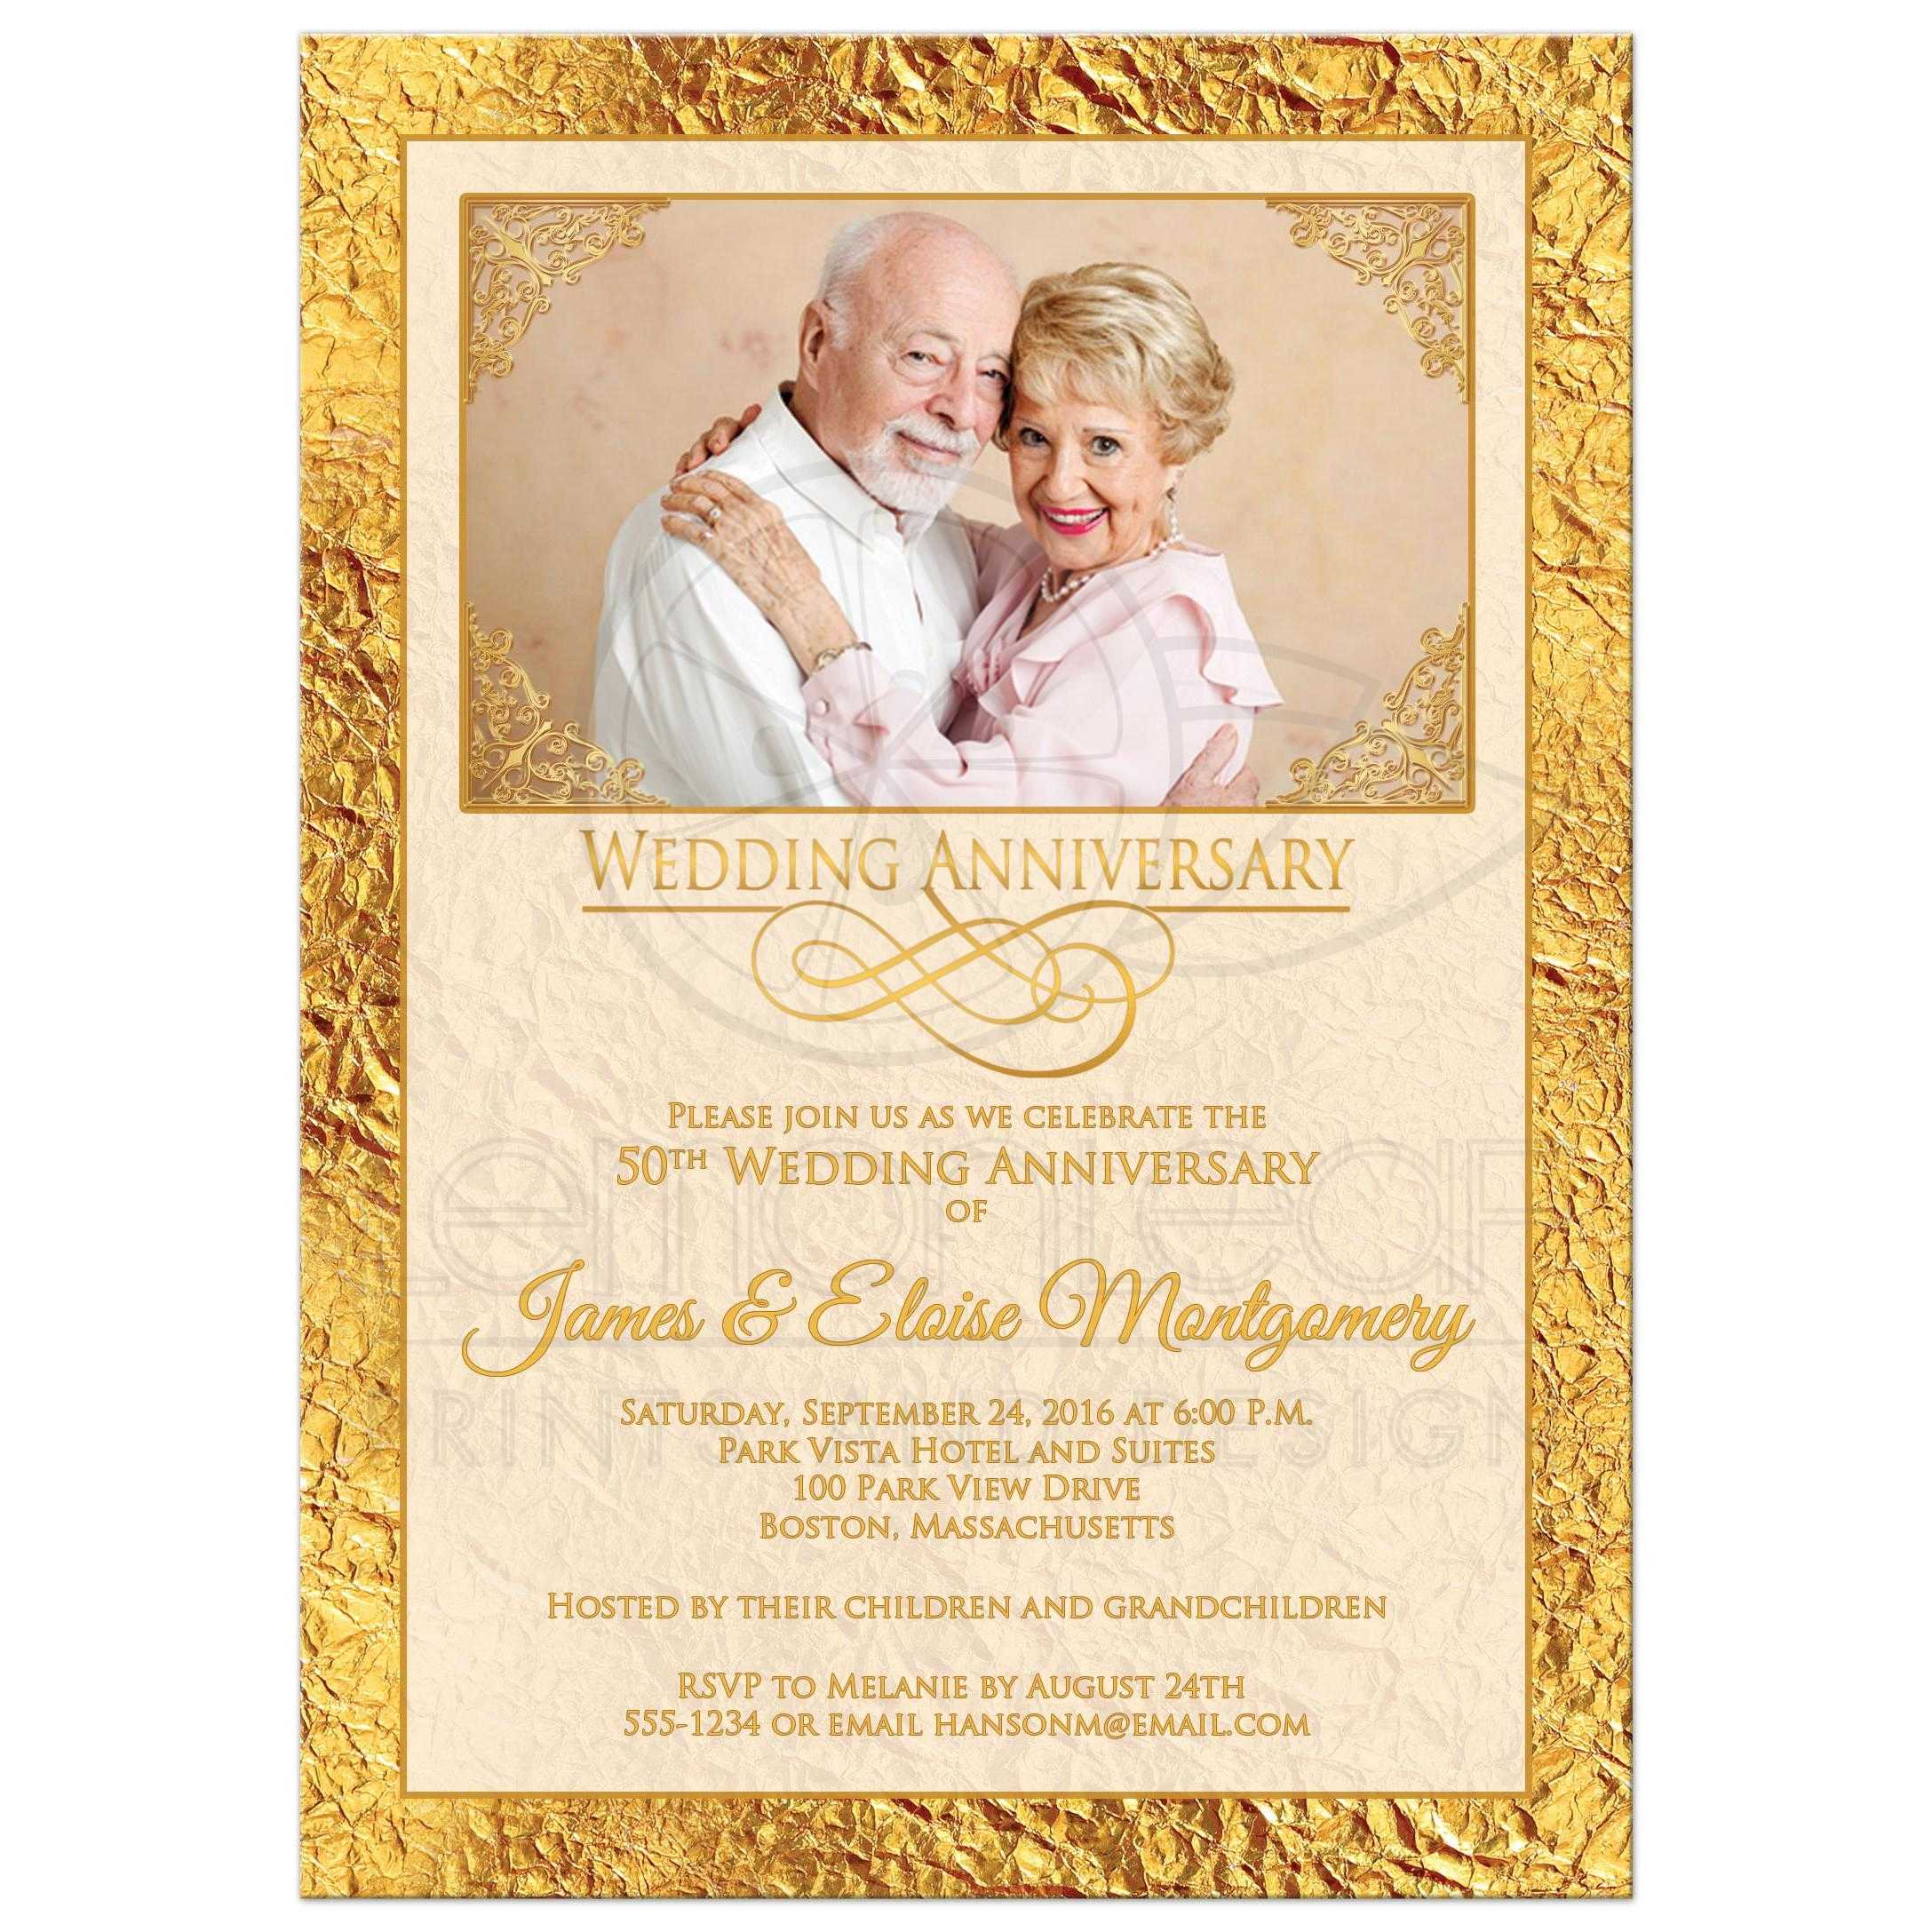 25649_Rectangle_50thIvoryGoldFoilPhoto?t=1429232493 50th wedding anniversary photo invitation ivory, gold scrolls,50th Wedding Anniversary Invitations